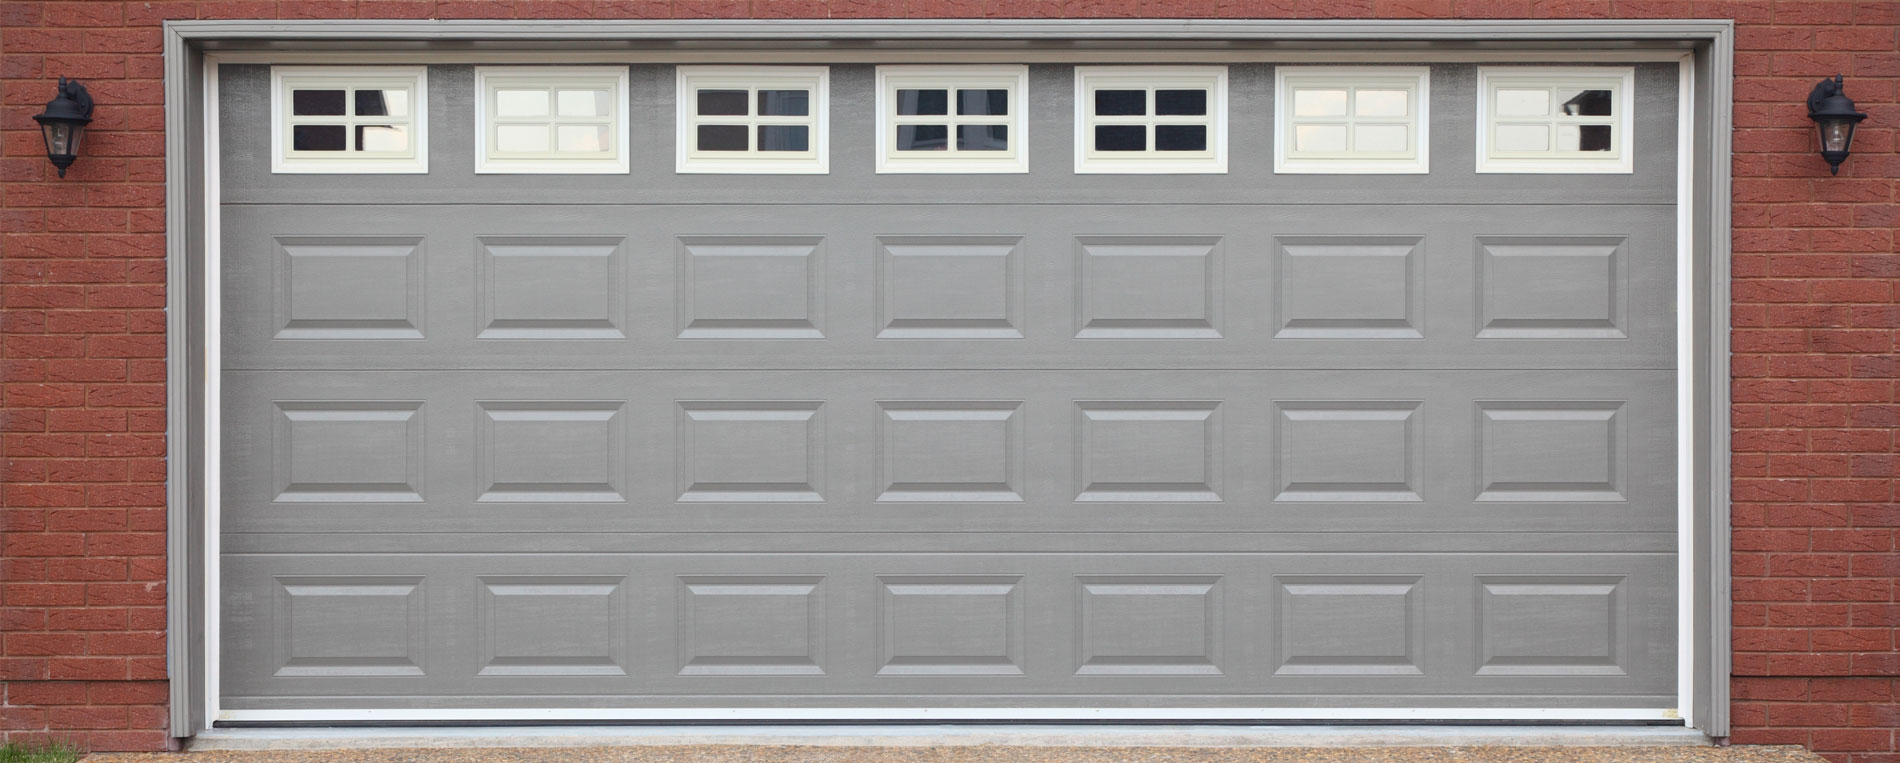 Garage Door Repair South Saint Paul, MN